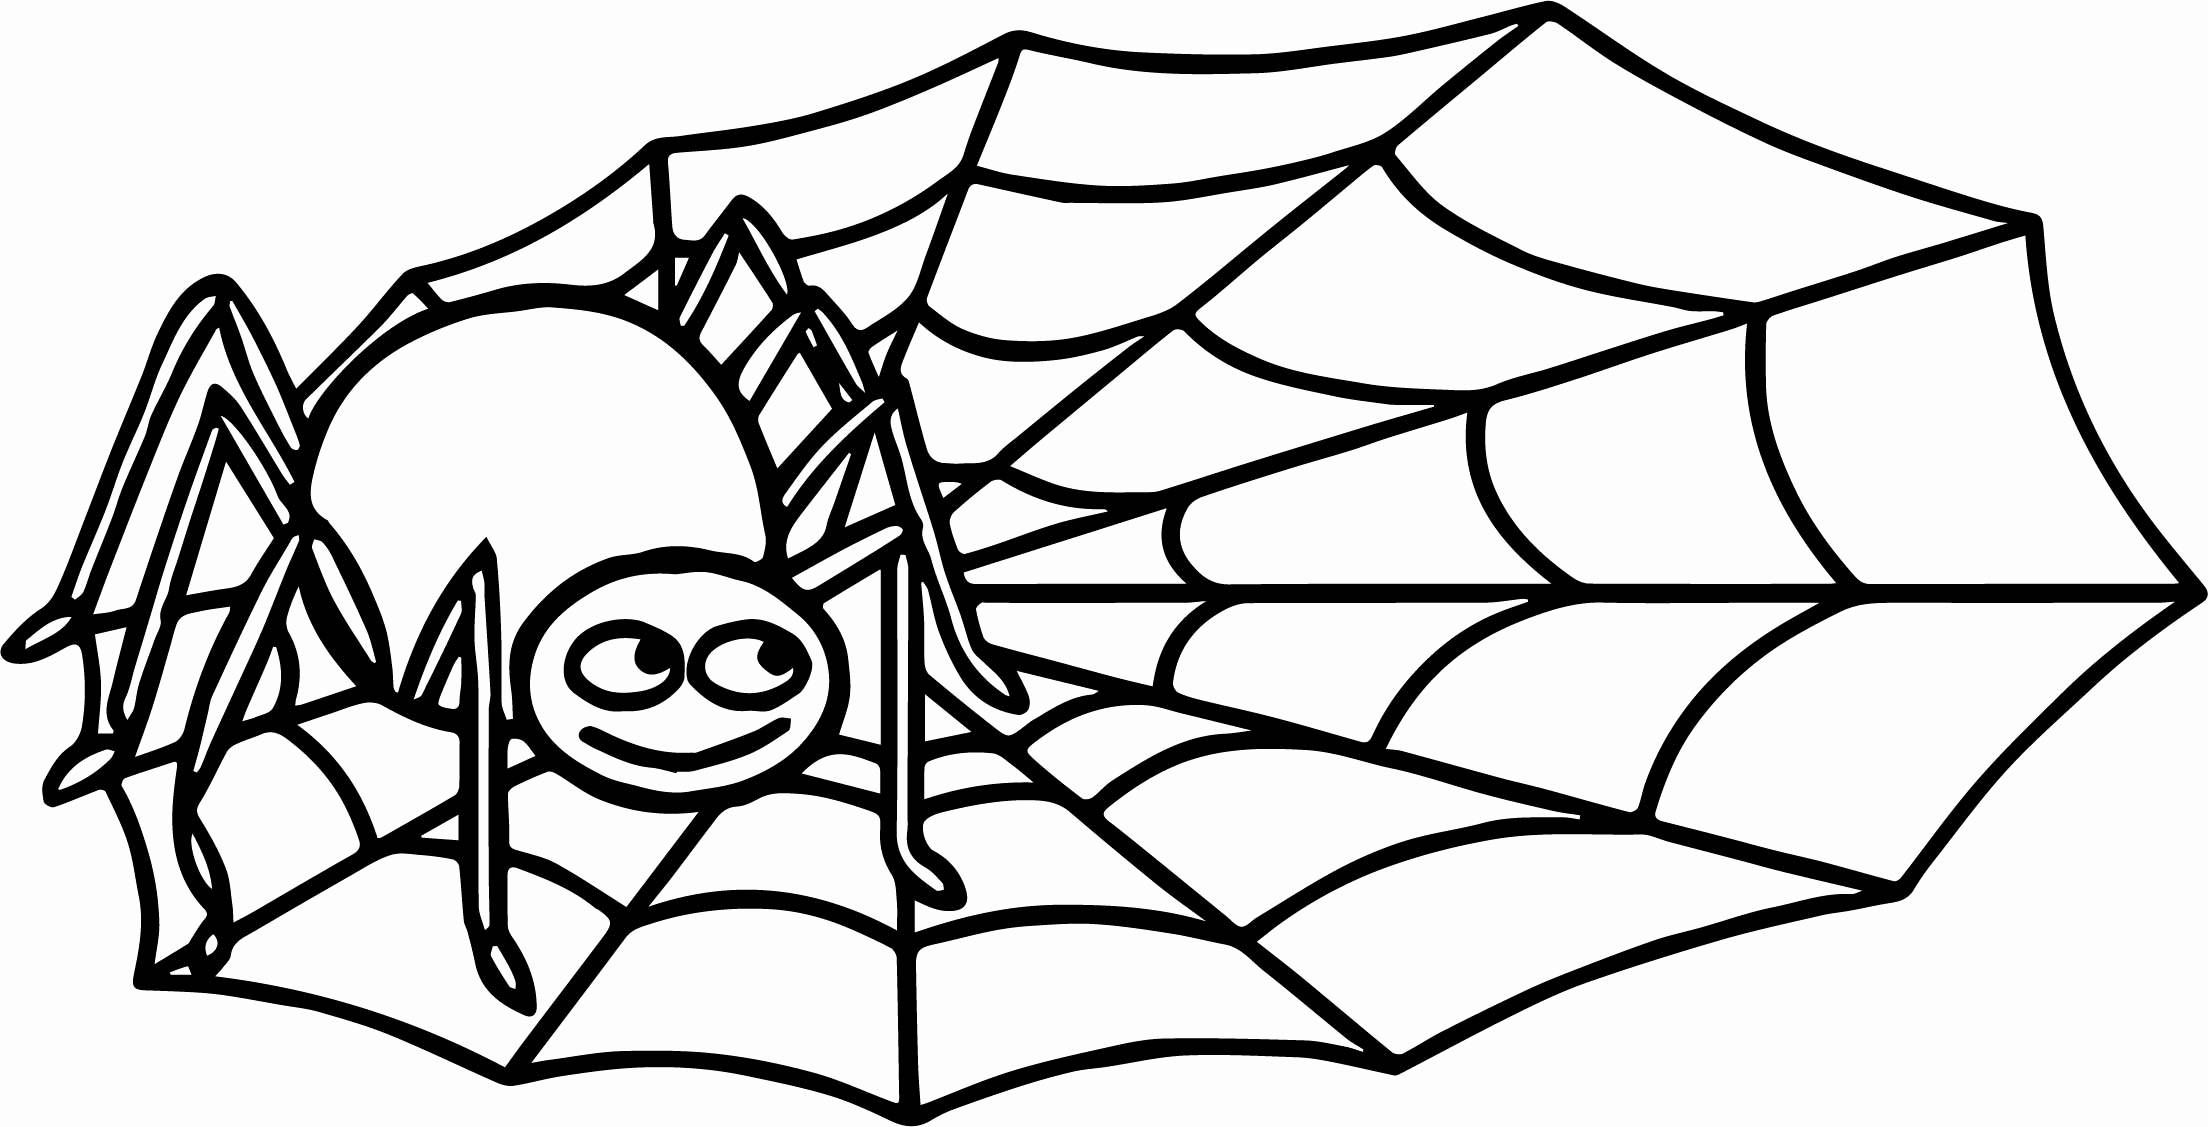 minecraft spider drawing minecraft spider coloring pages at getdrawings free download minecraft spider drawing